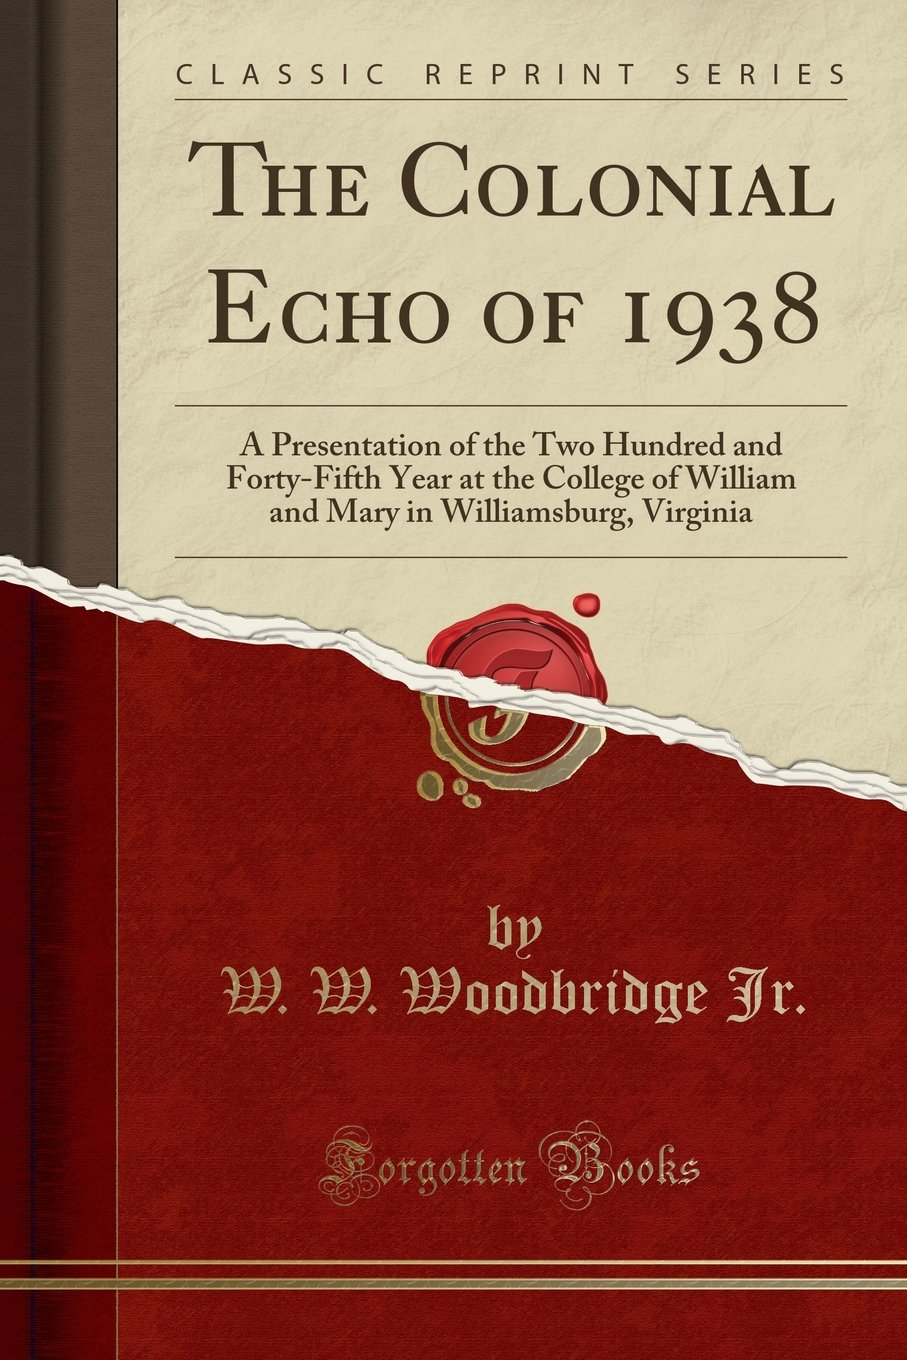 Download The Colonial Echo of 1938: A Presentation of the Two Hundred and Forty-Fifth Year at the College of William and Mary in Williamsburg, Virginia (Classic Reprint) pdf epub